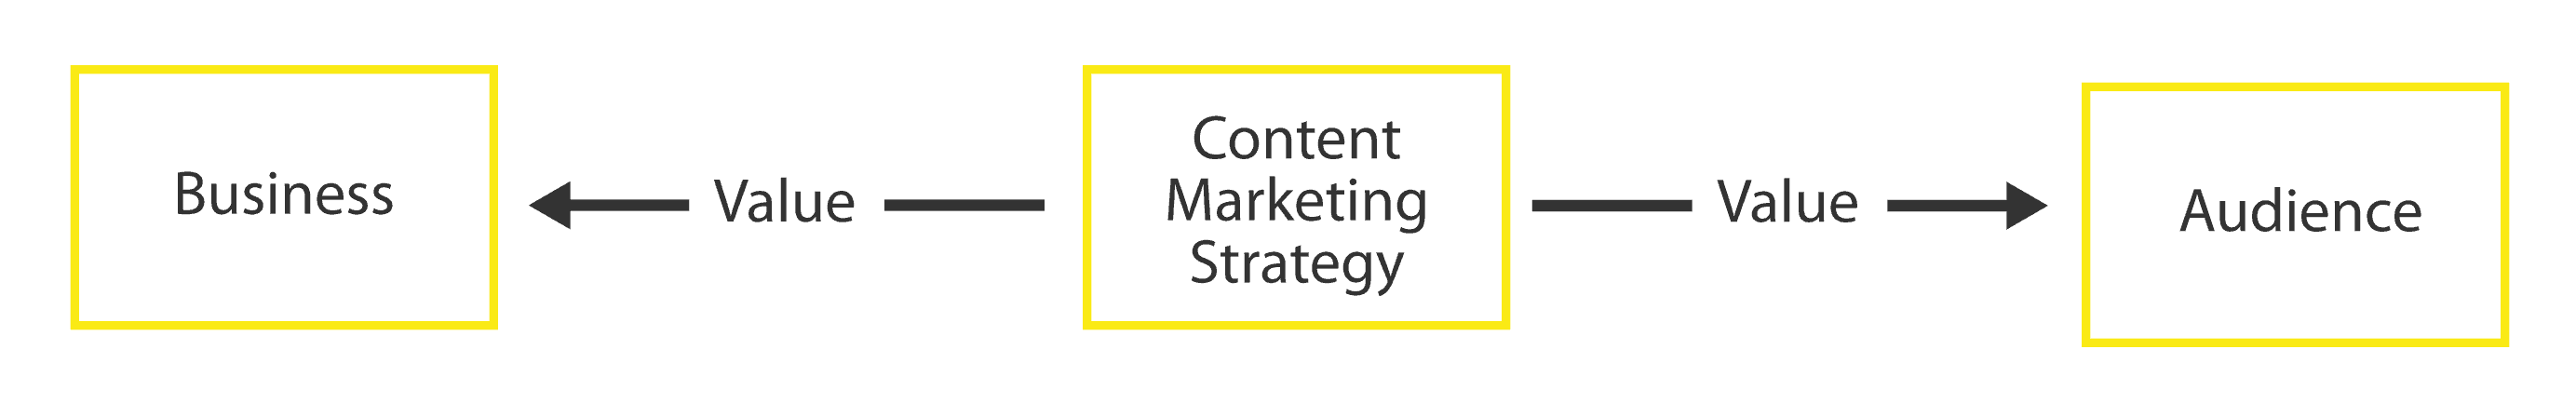 content-marketing-creates-value